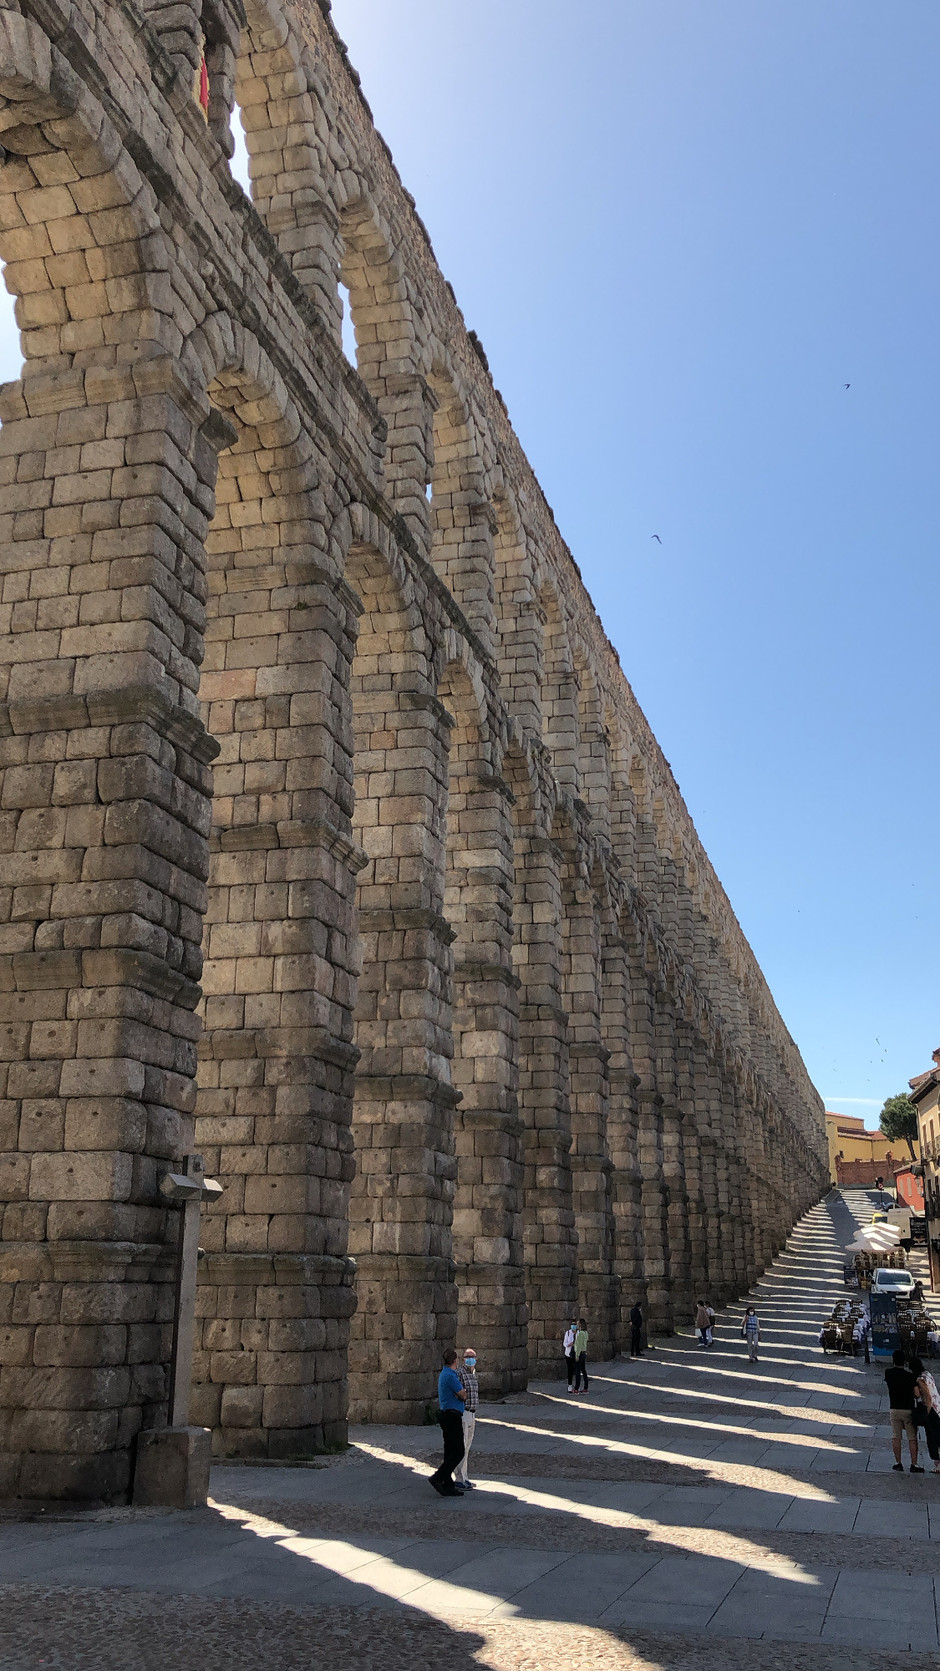 Segovia, Spain; A Small Spanish City That Packs A Punch